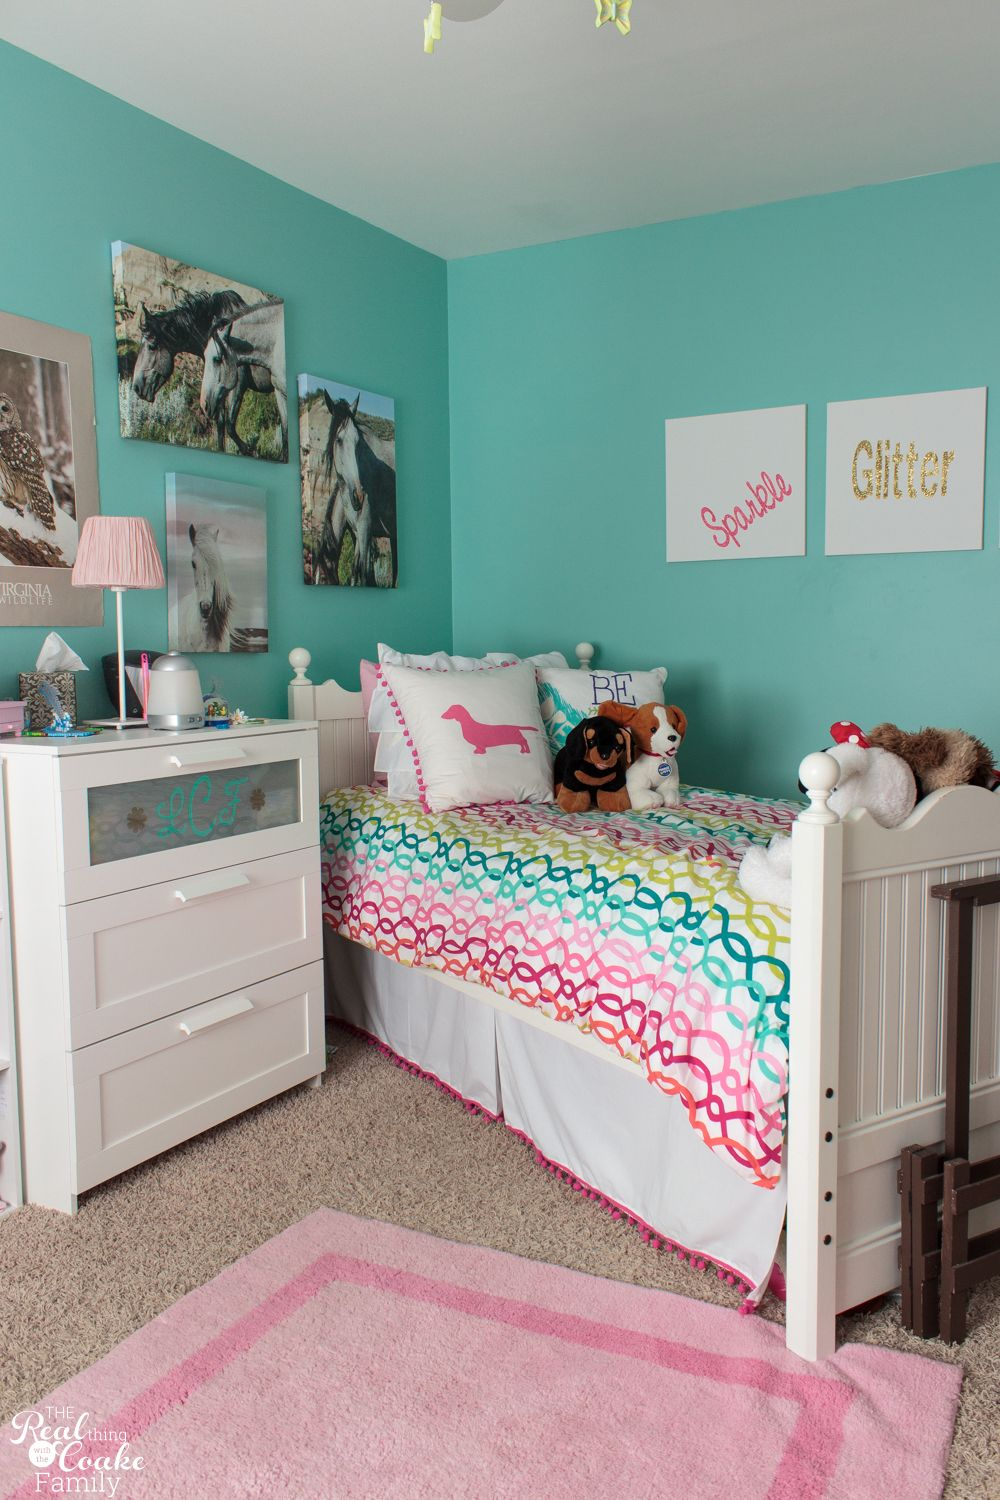 Cute bedroom ideas for tween girls kids girls bedroom - Cute girl room ideas ...